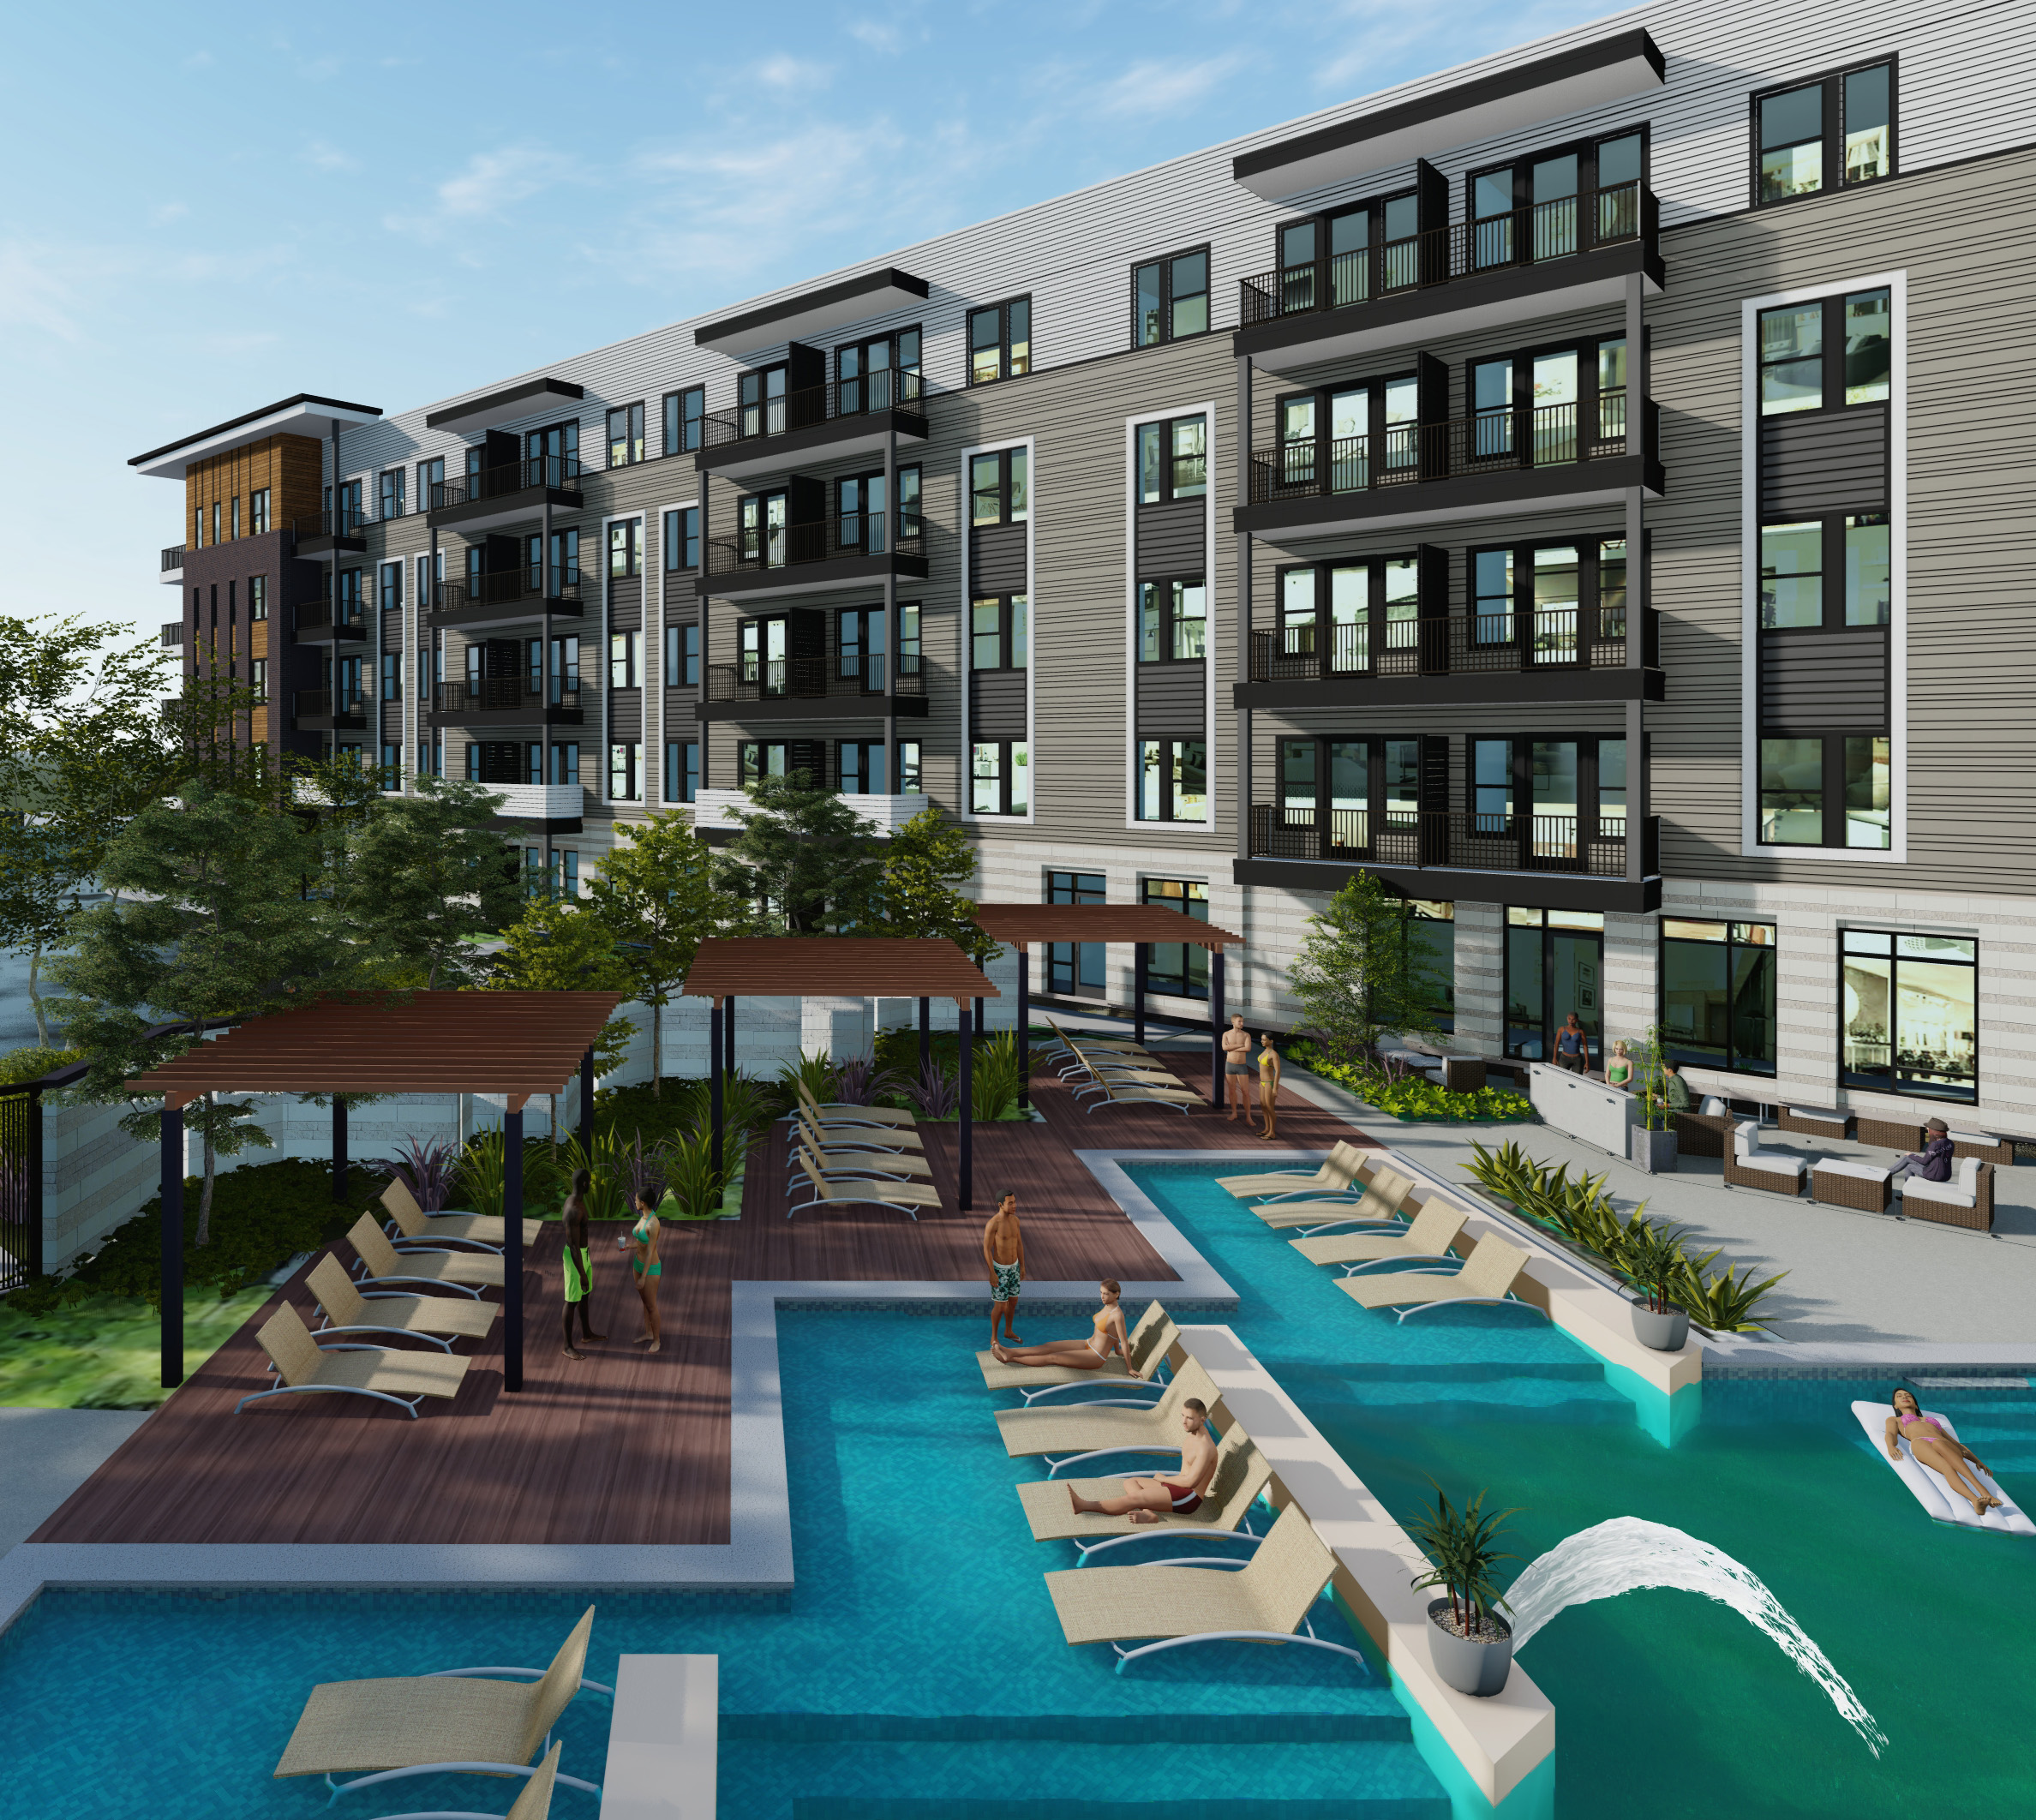 Valencia Apartments Uptown Dallas: New Development Adding 430 Apartments Near Uptown